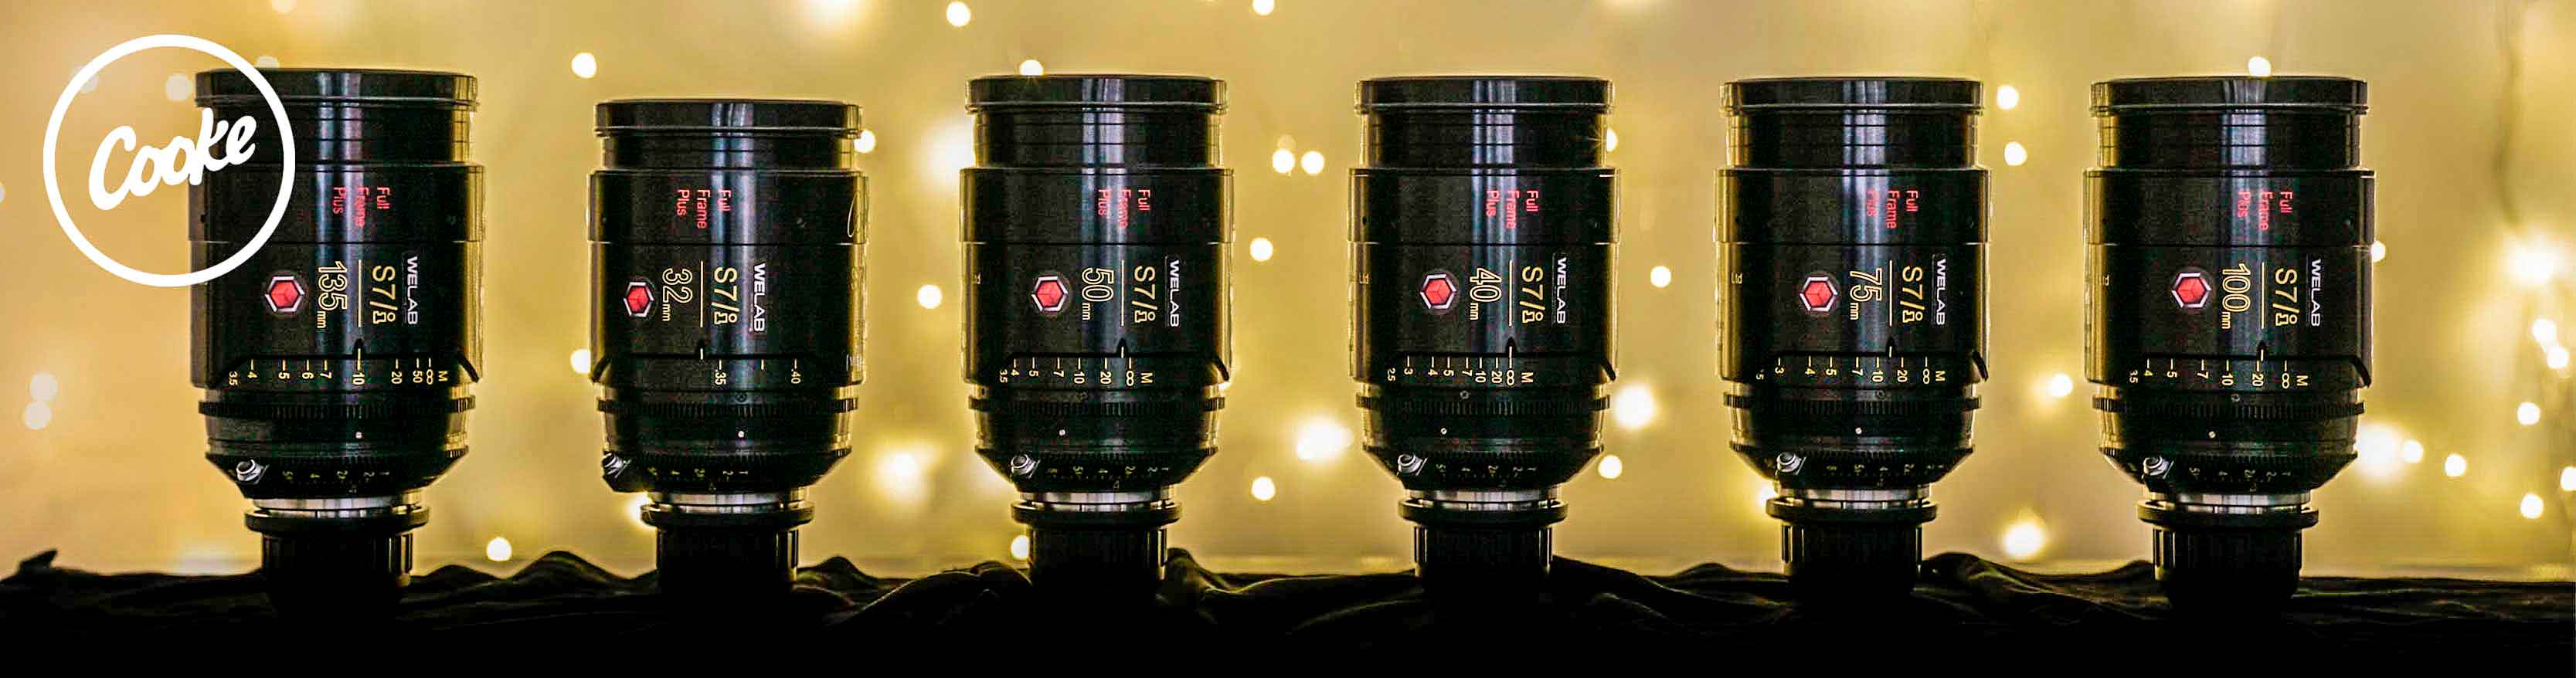 Cooke s7i Full Frame